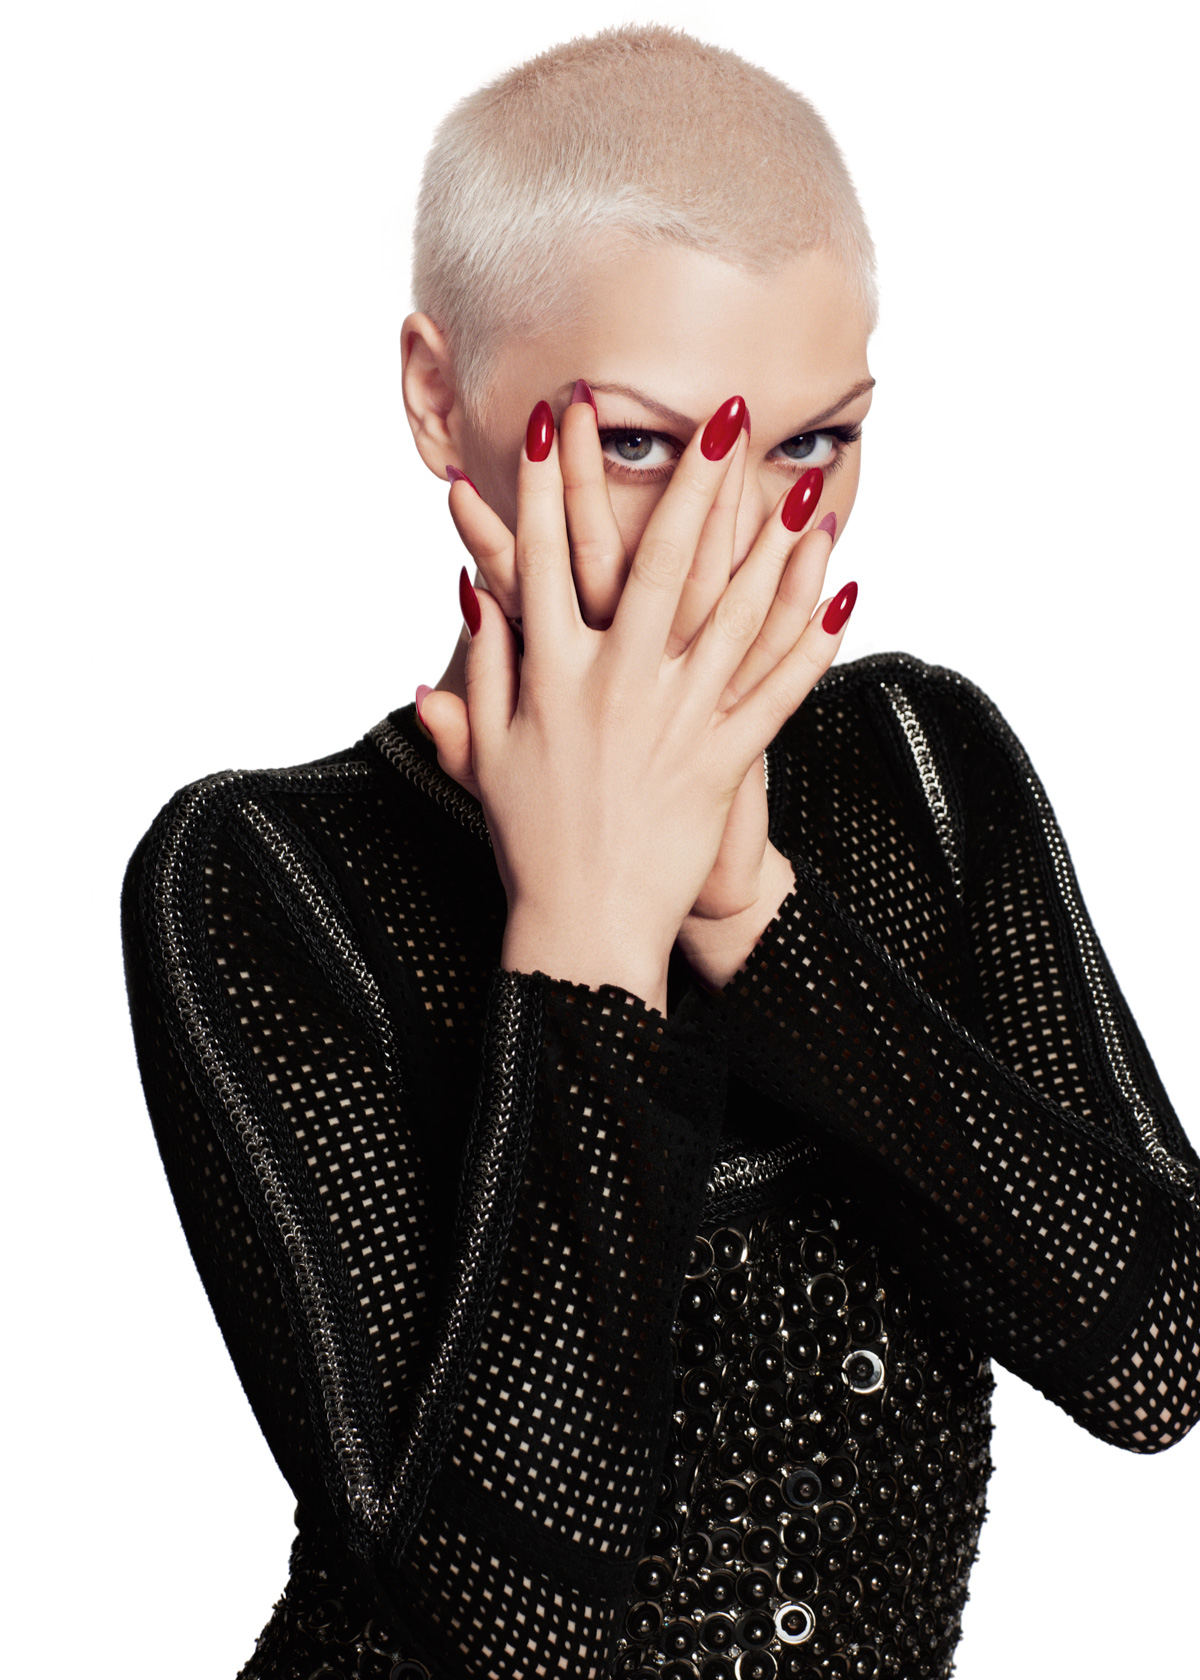 House Of Usher Jessie J by David Roemer 0